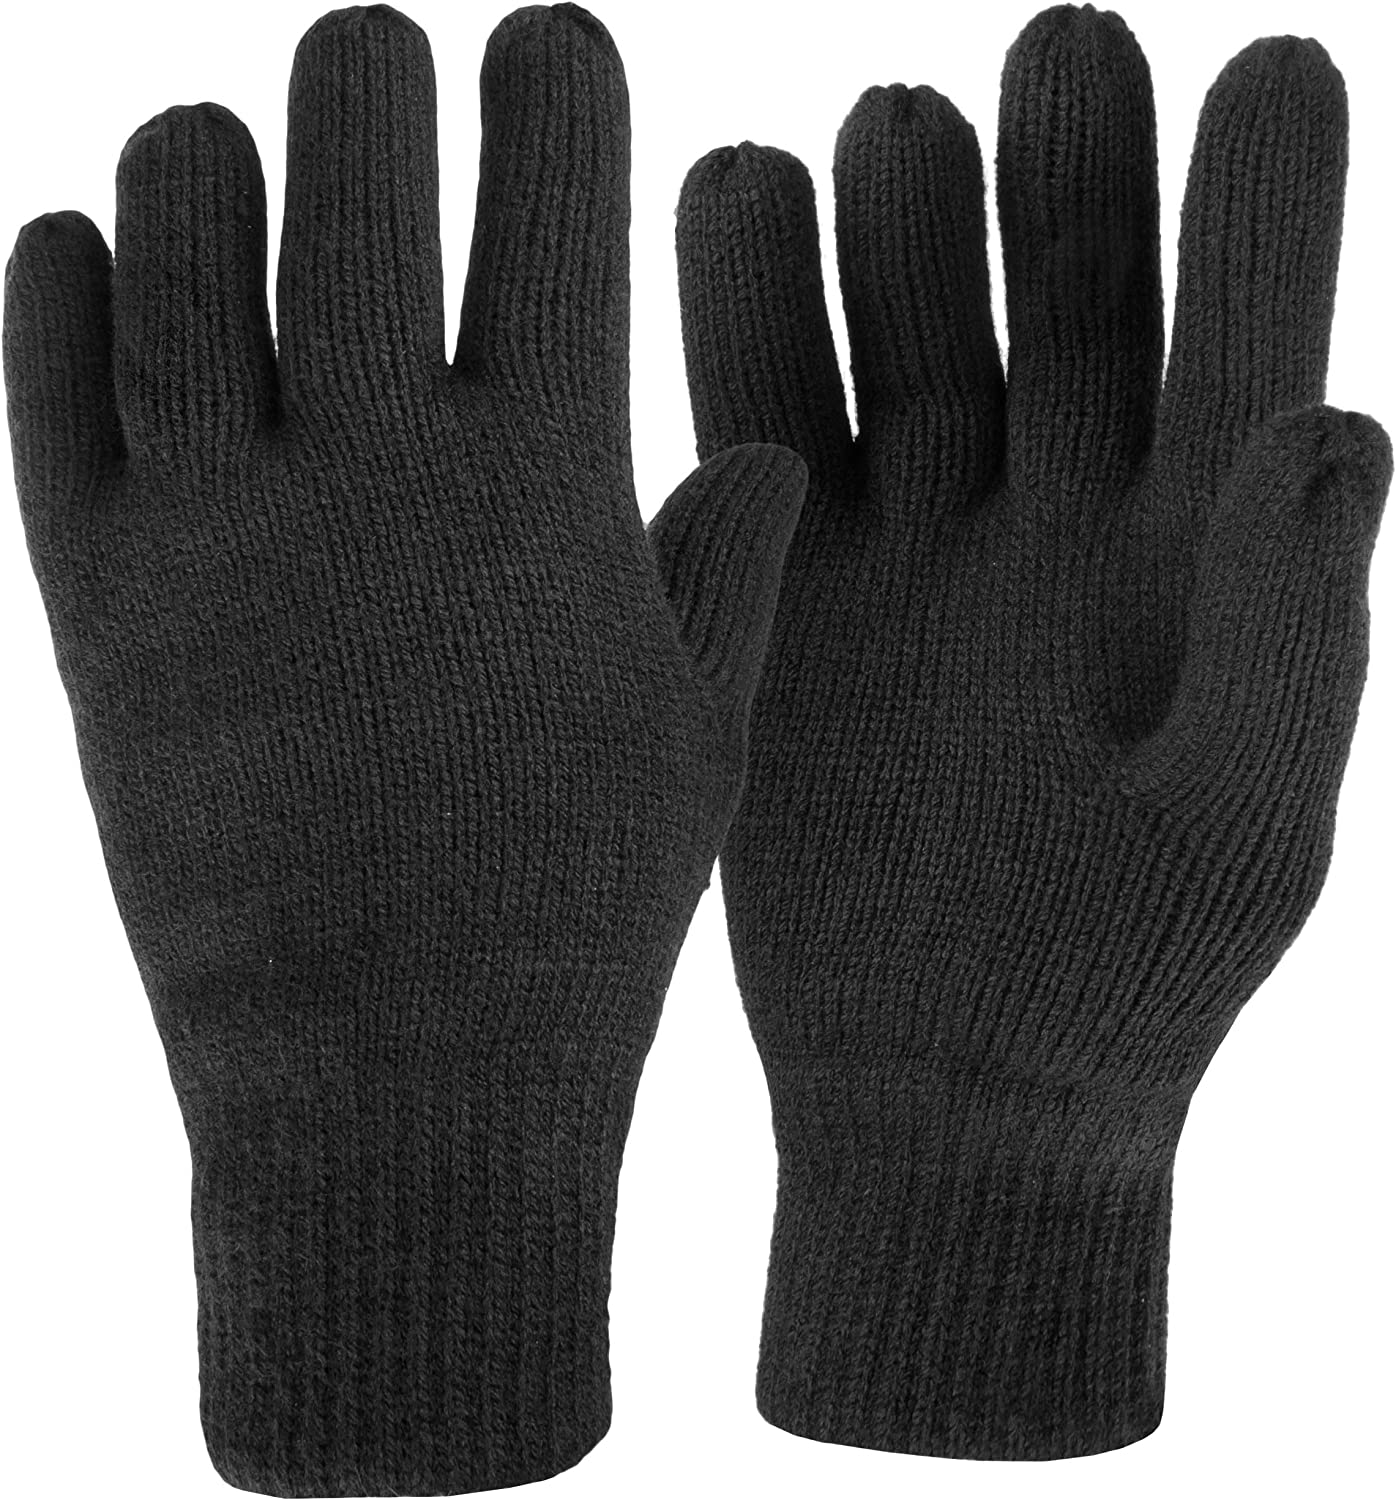 Medium Highlander Drayton Black Gloves ― 100/% Acrylic ― Quality Thinsulate/™ Lining ― Small Large and Extra Large ― Your Perfect Day-to-Day Glove!